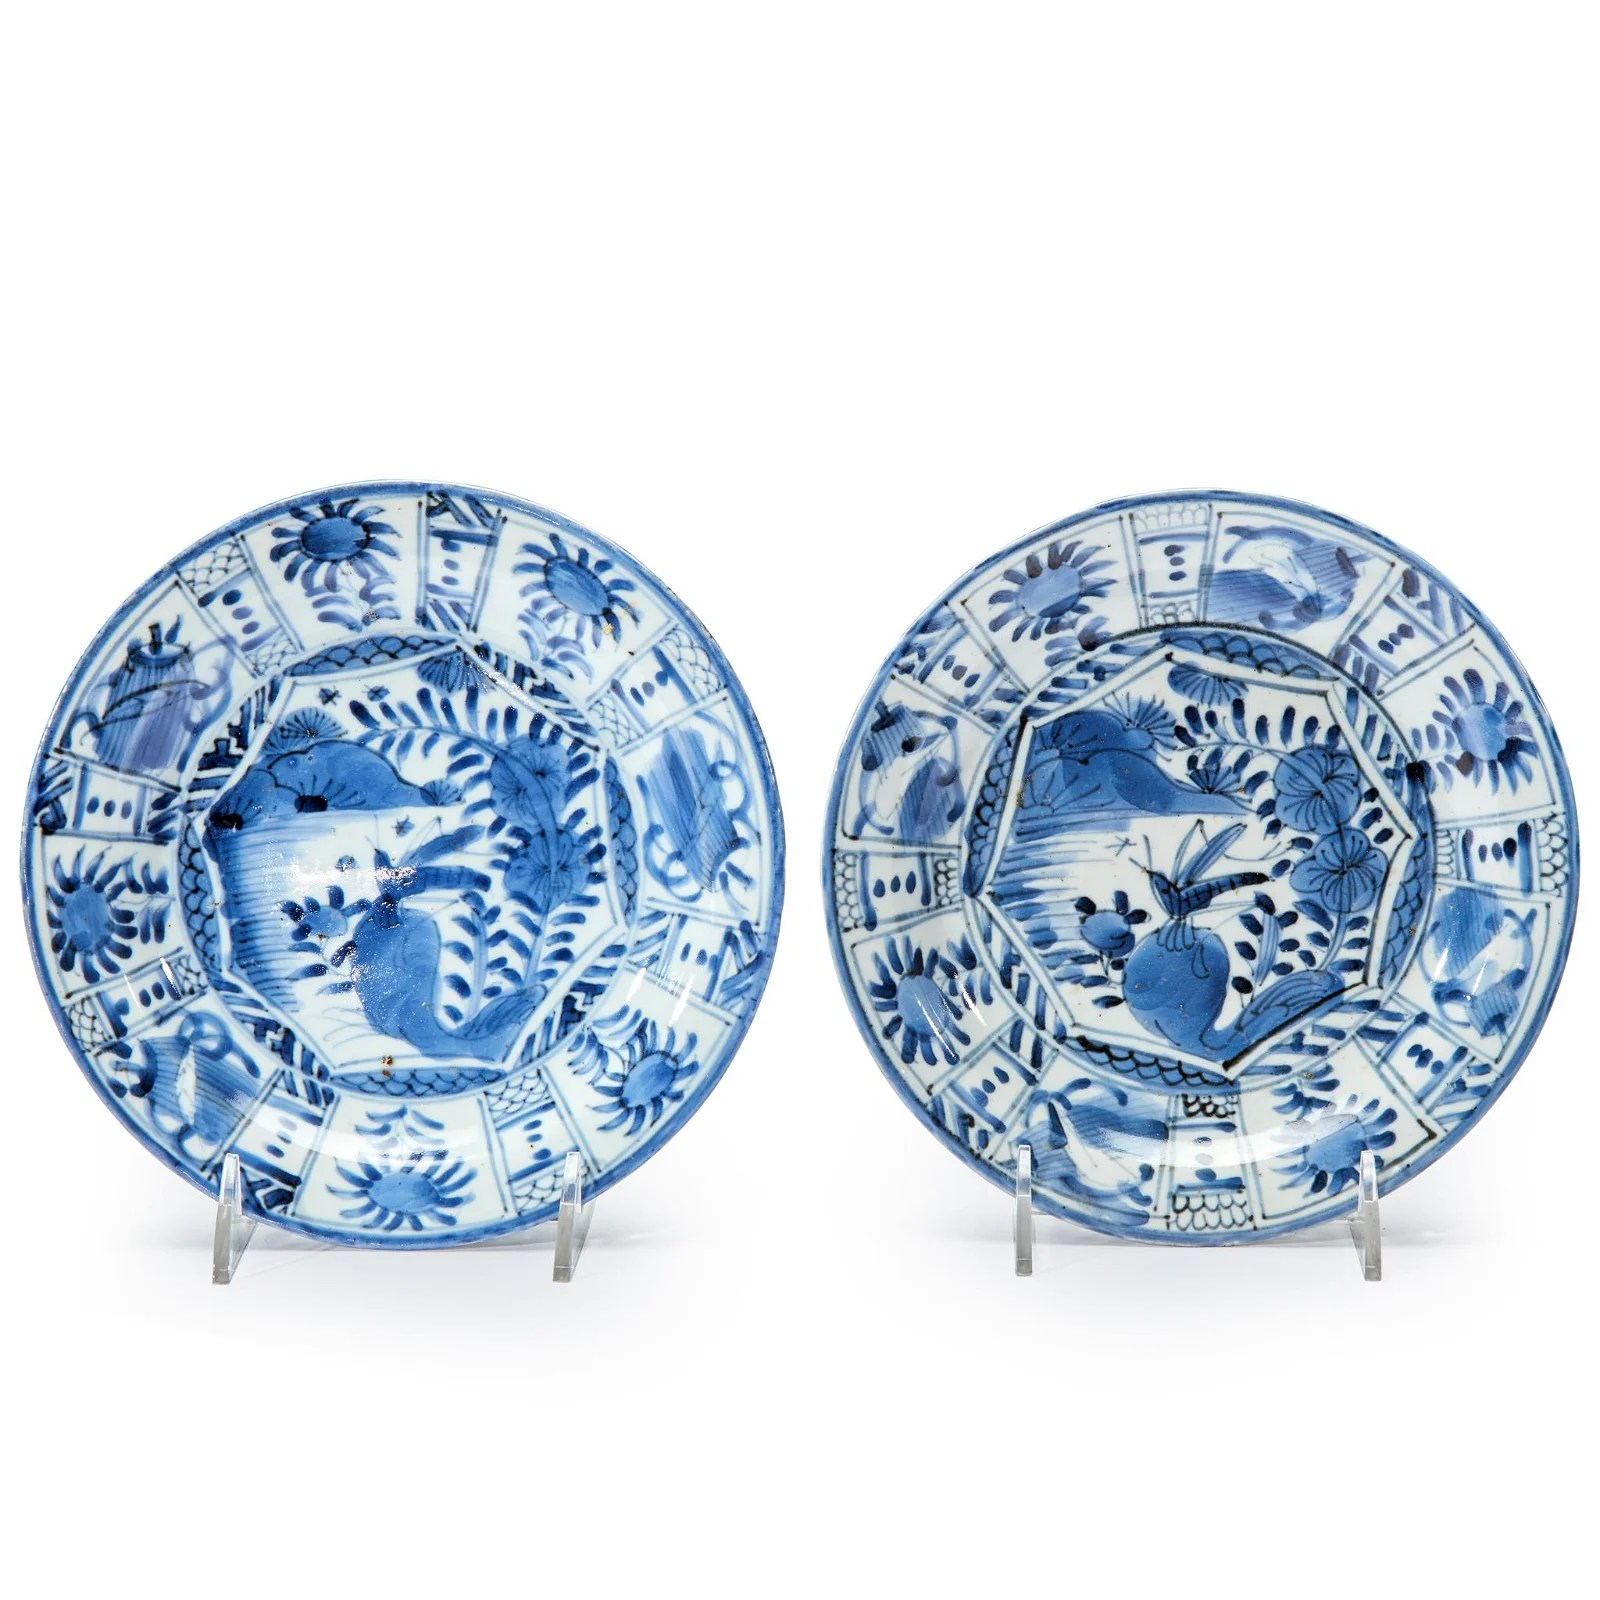 A pair of Japanese Arita porcelain blue and white